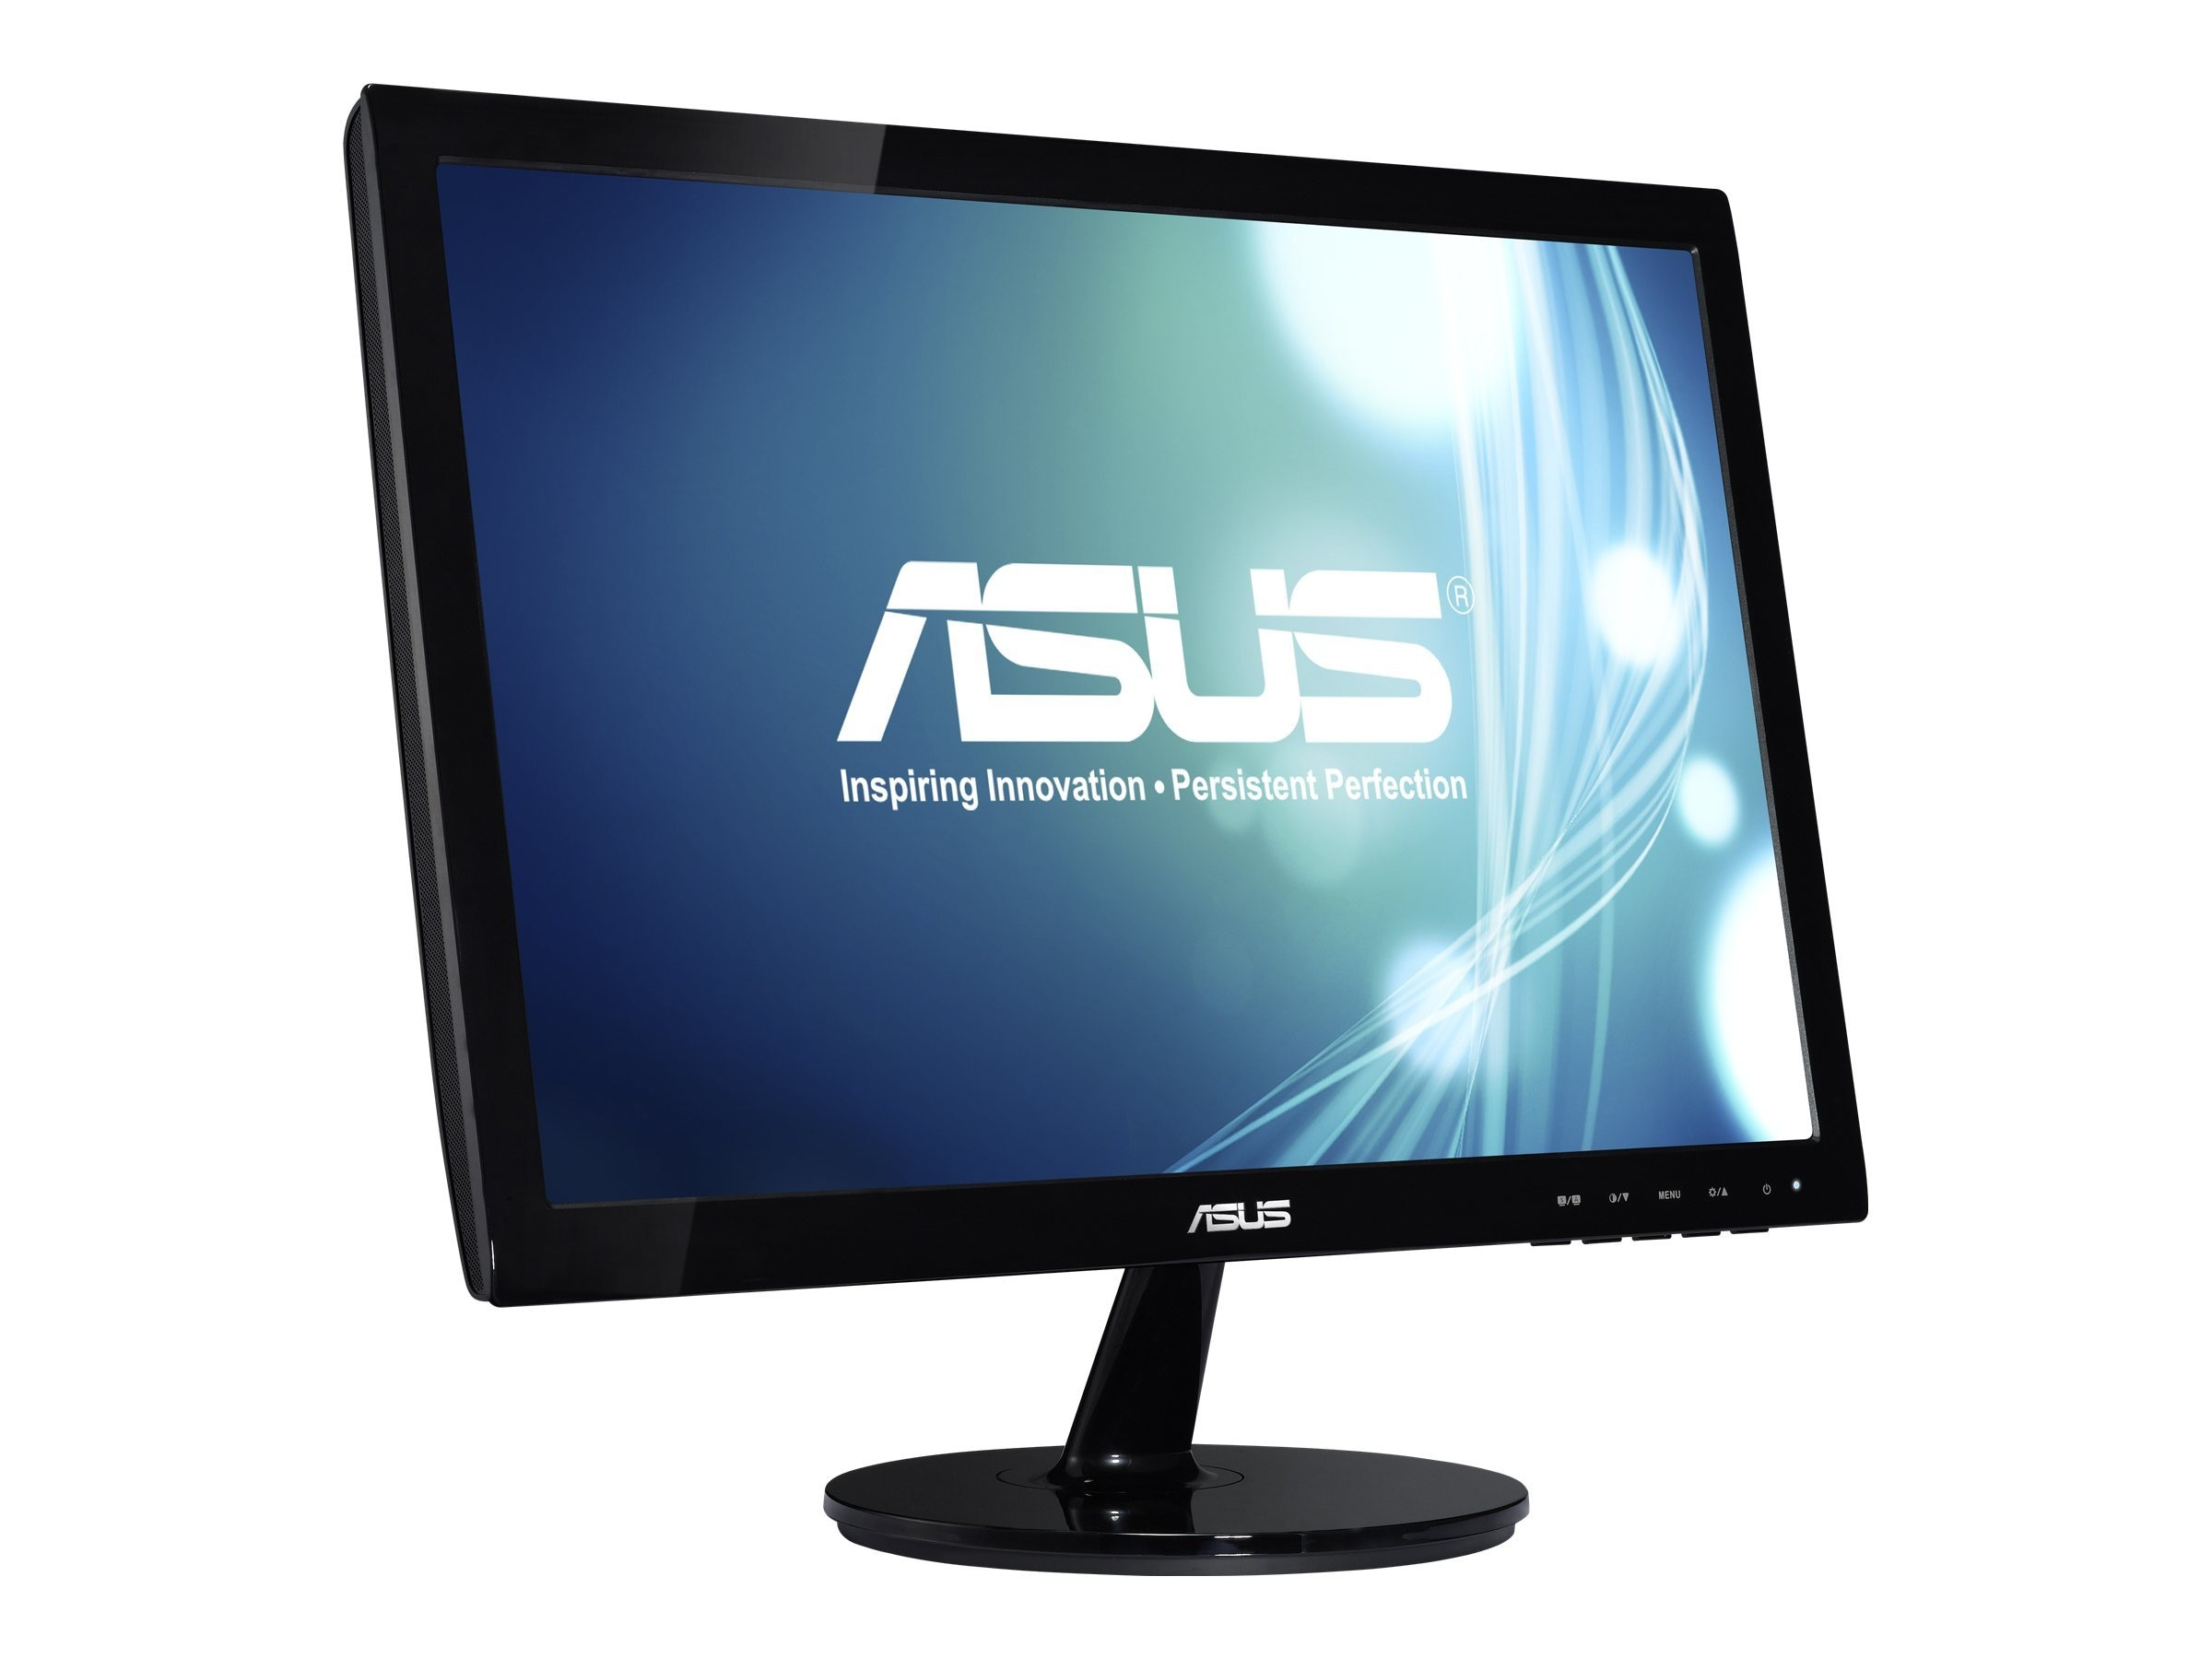 Open Box Asus 19 VS197D-P Widescreen LED-LCD Monitor, Black, VS197D-P